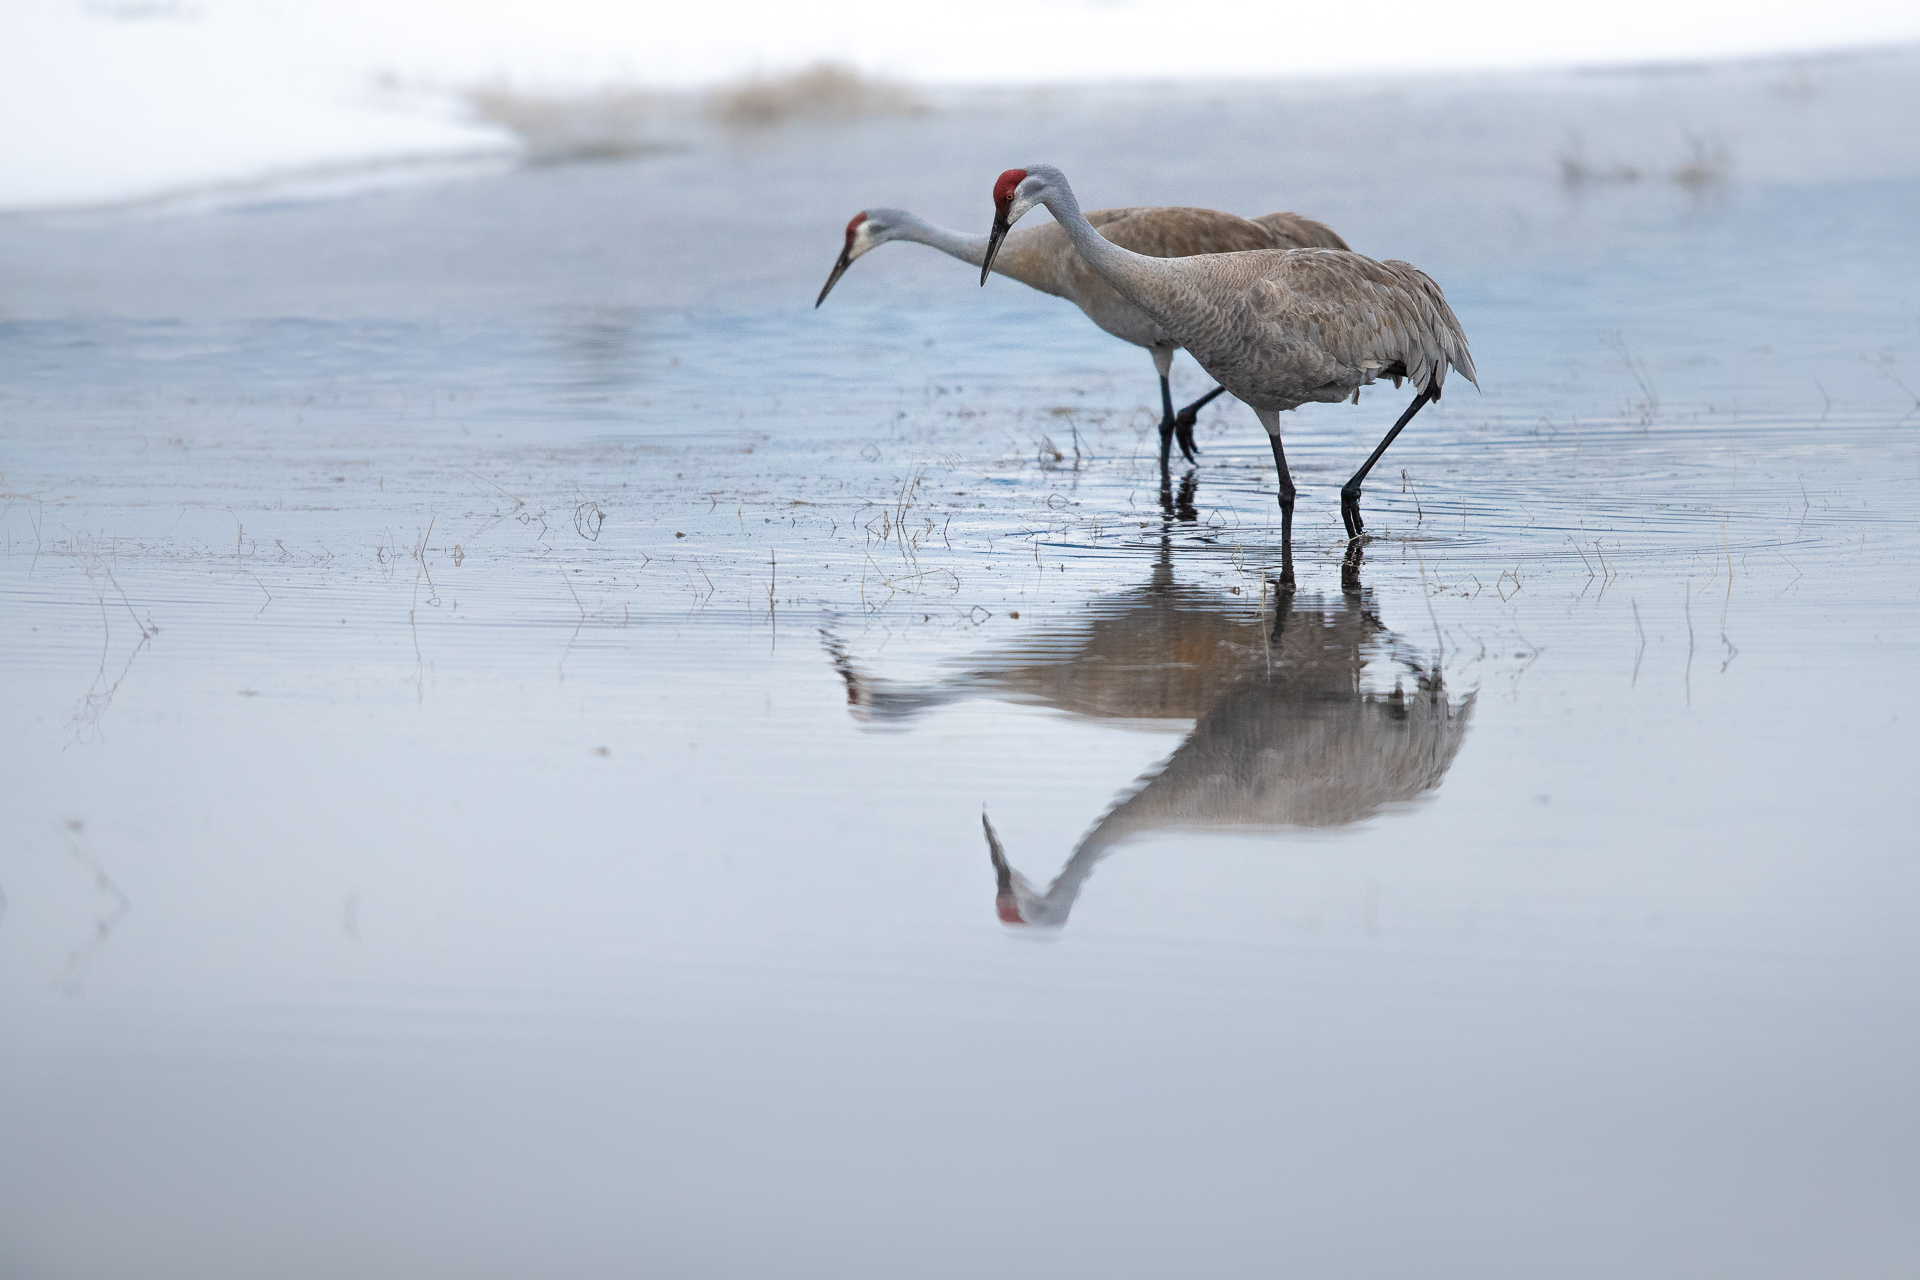 Pair of Sandhill Cranes